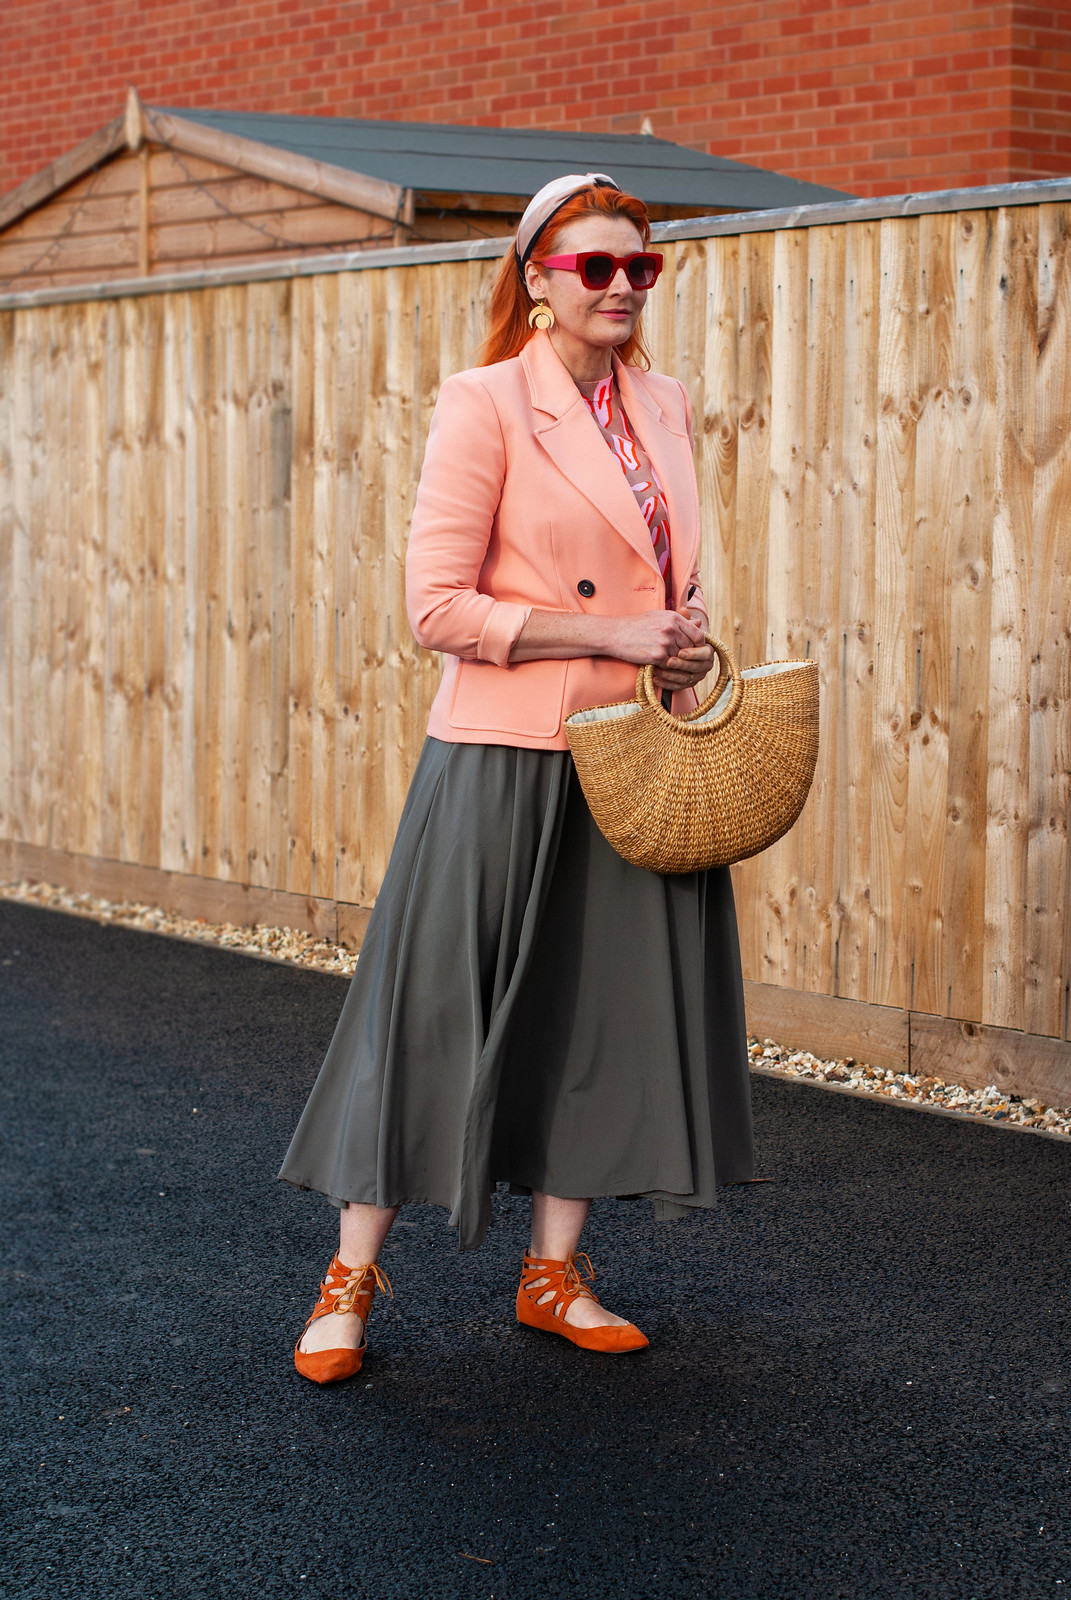 Fashion Over 40: Pink Animal Print With Peach and a Circle Maxi Skirt | Not Dressed As Lamb, 40 plus style blog